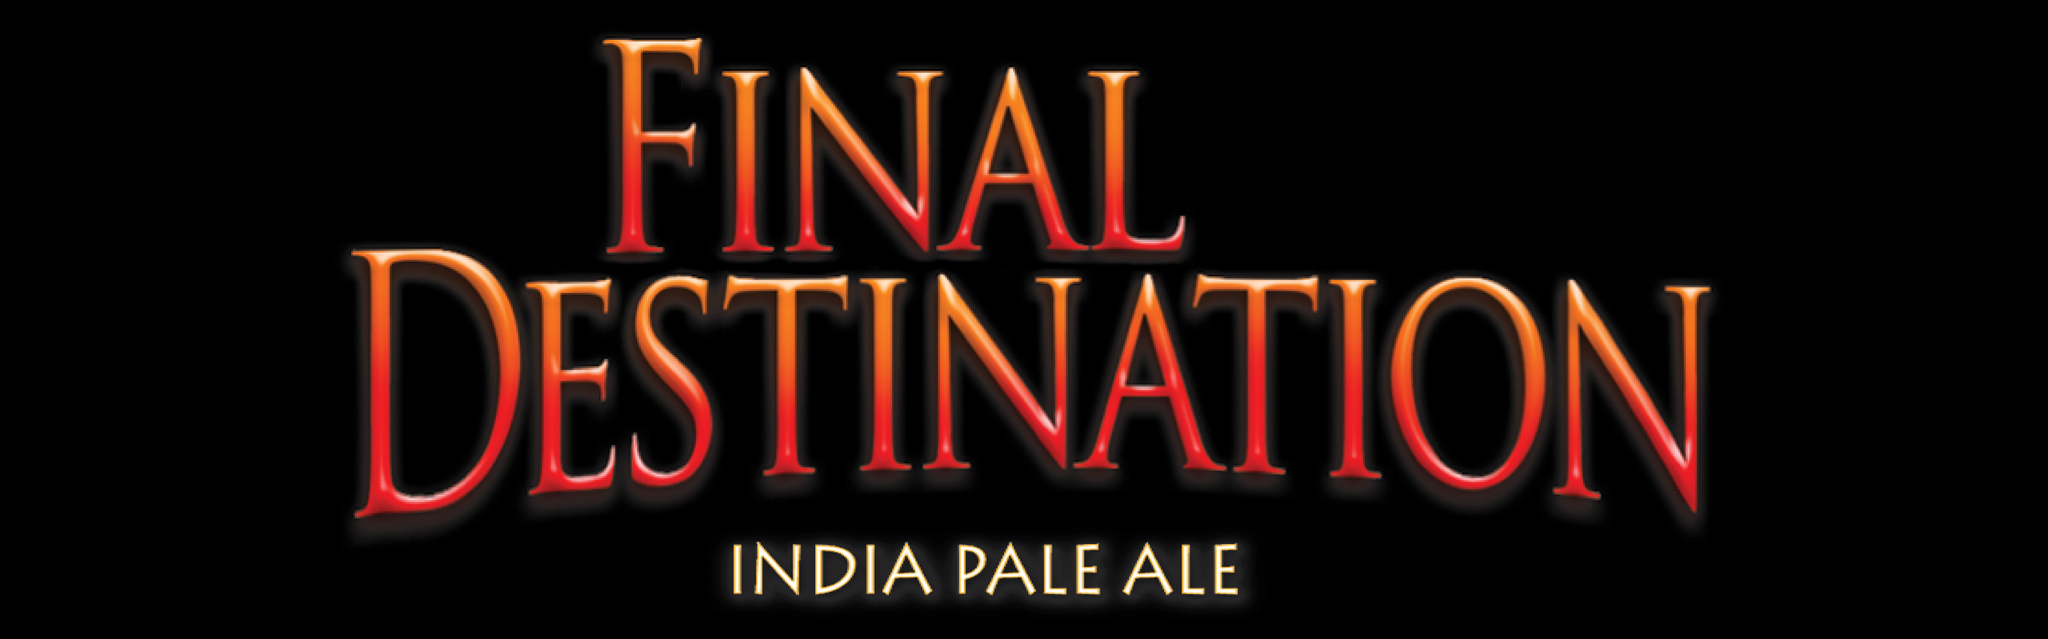 Final Destination IPA